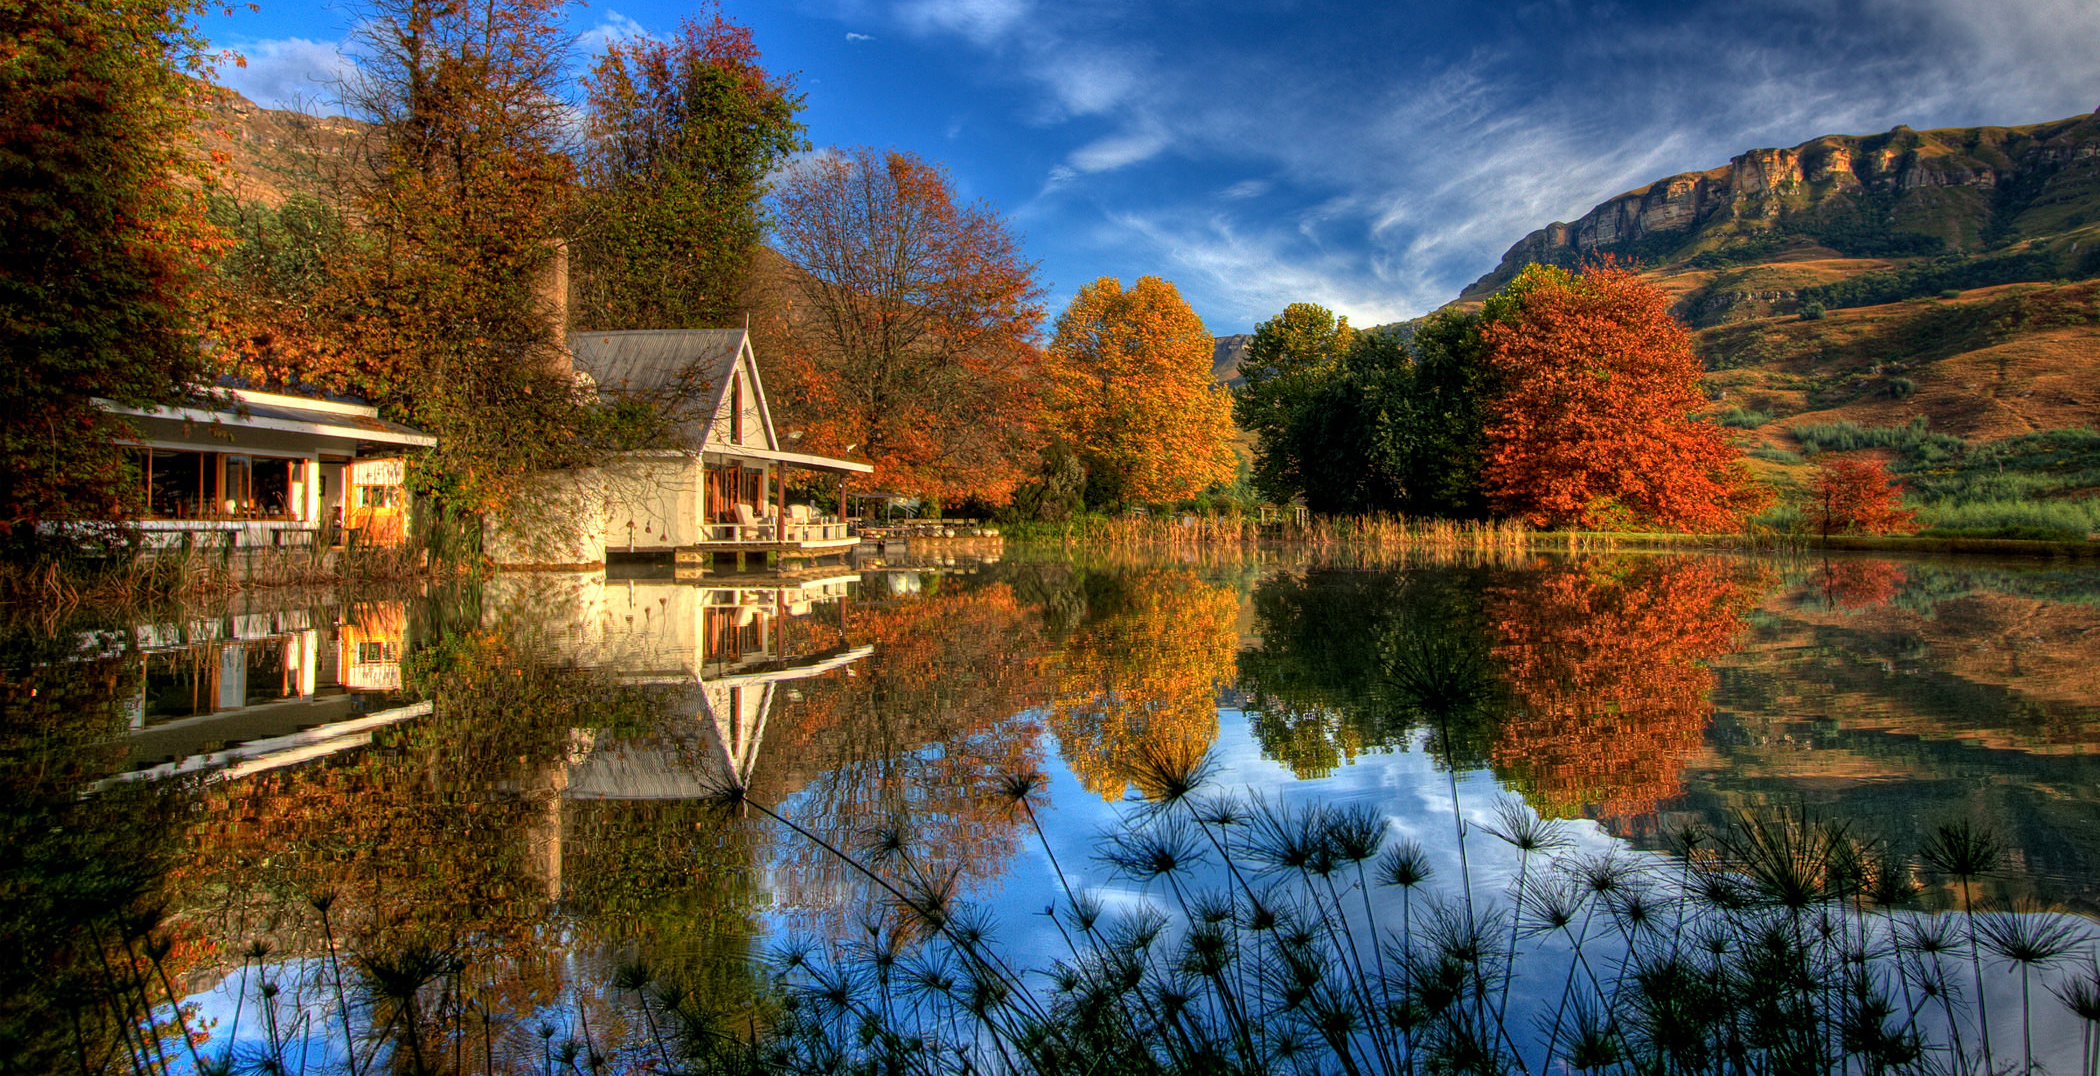 Cleopatra Mountain Farmhouse in Autumn